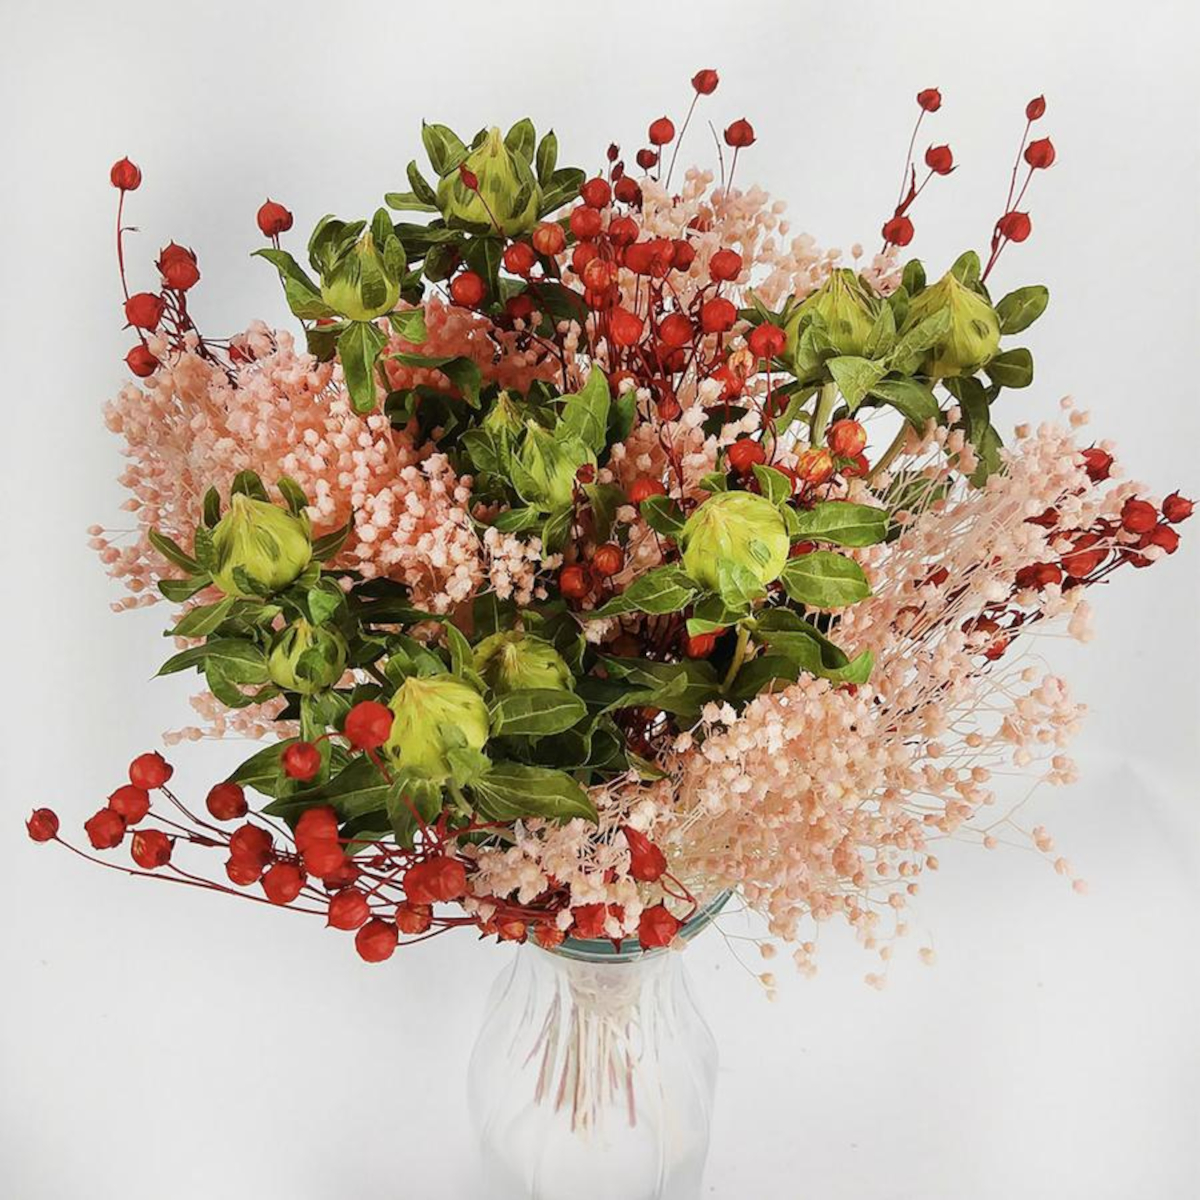 A bouquet from Great British Flowers - a great new home gift